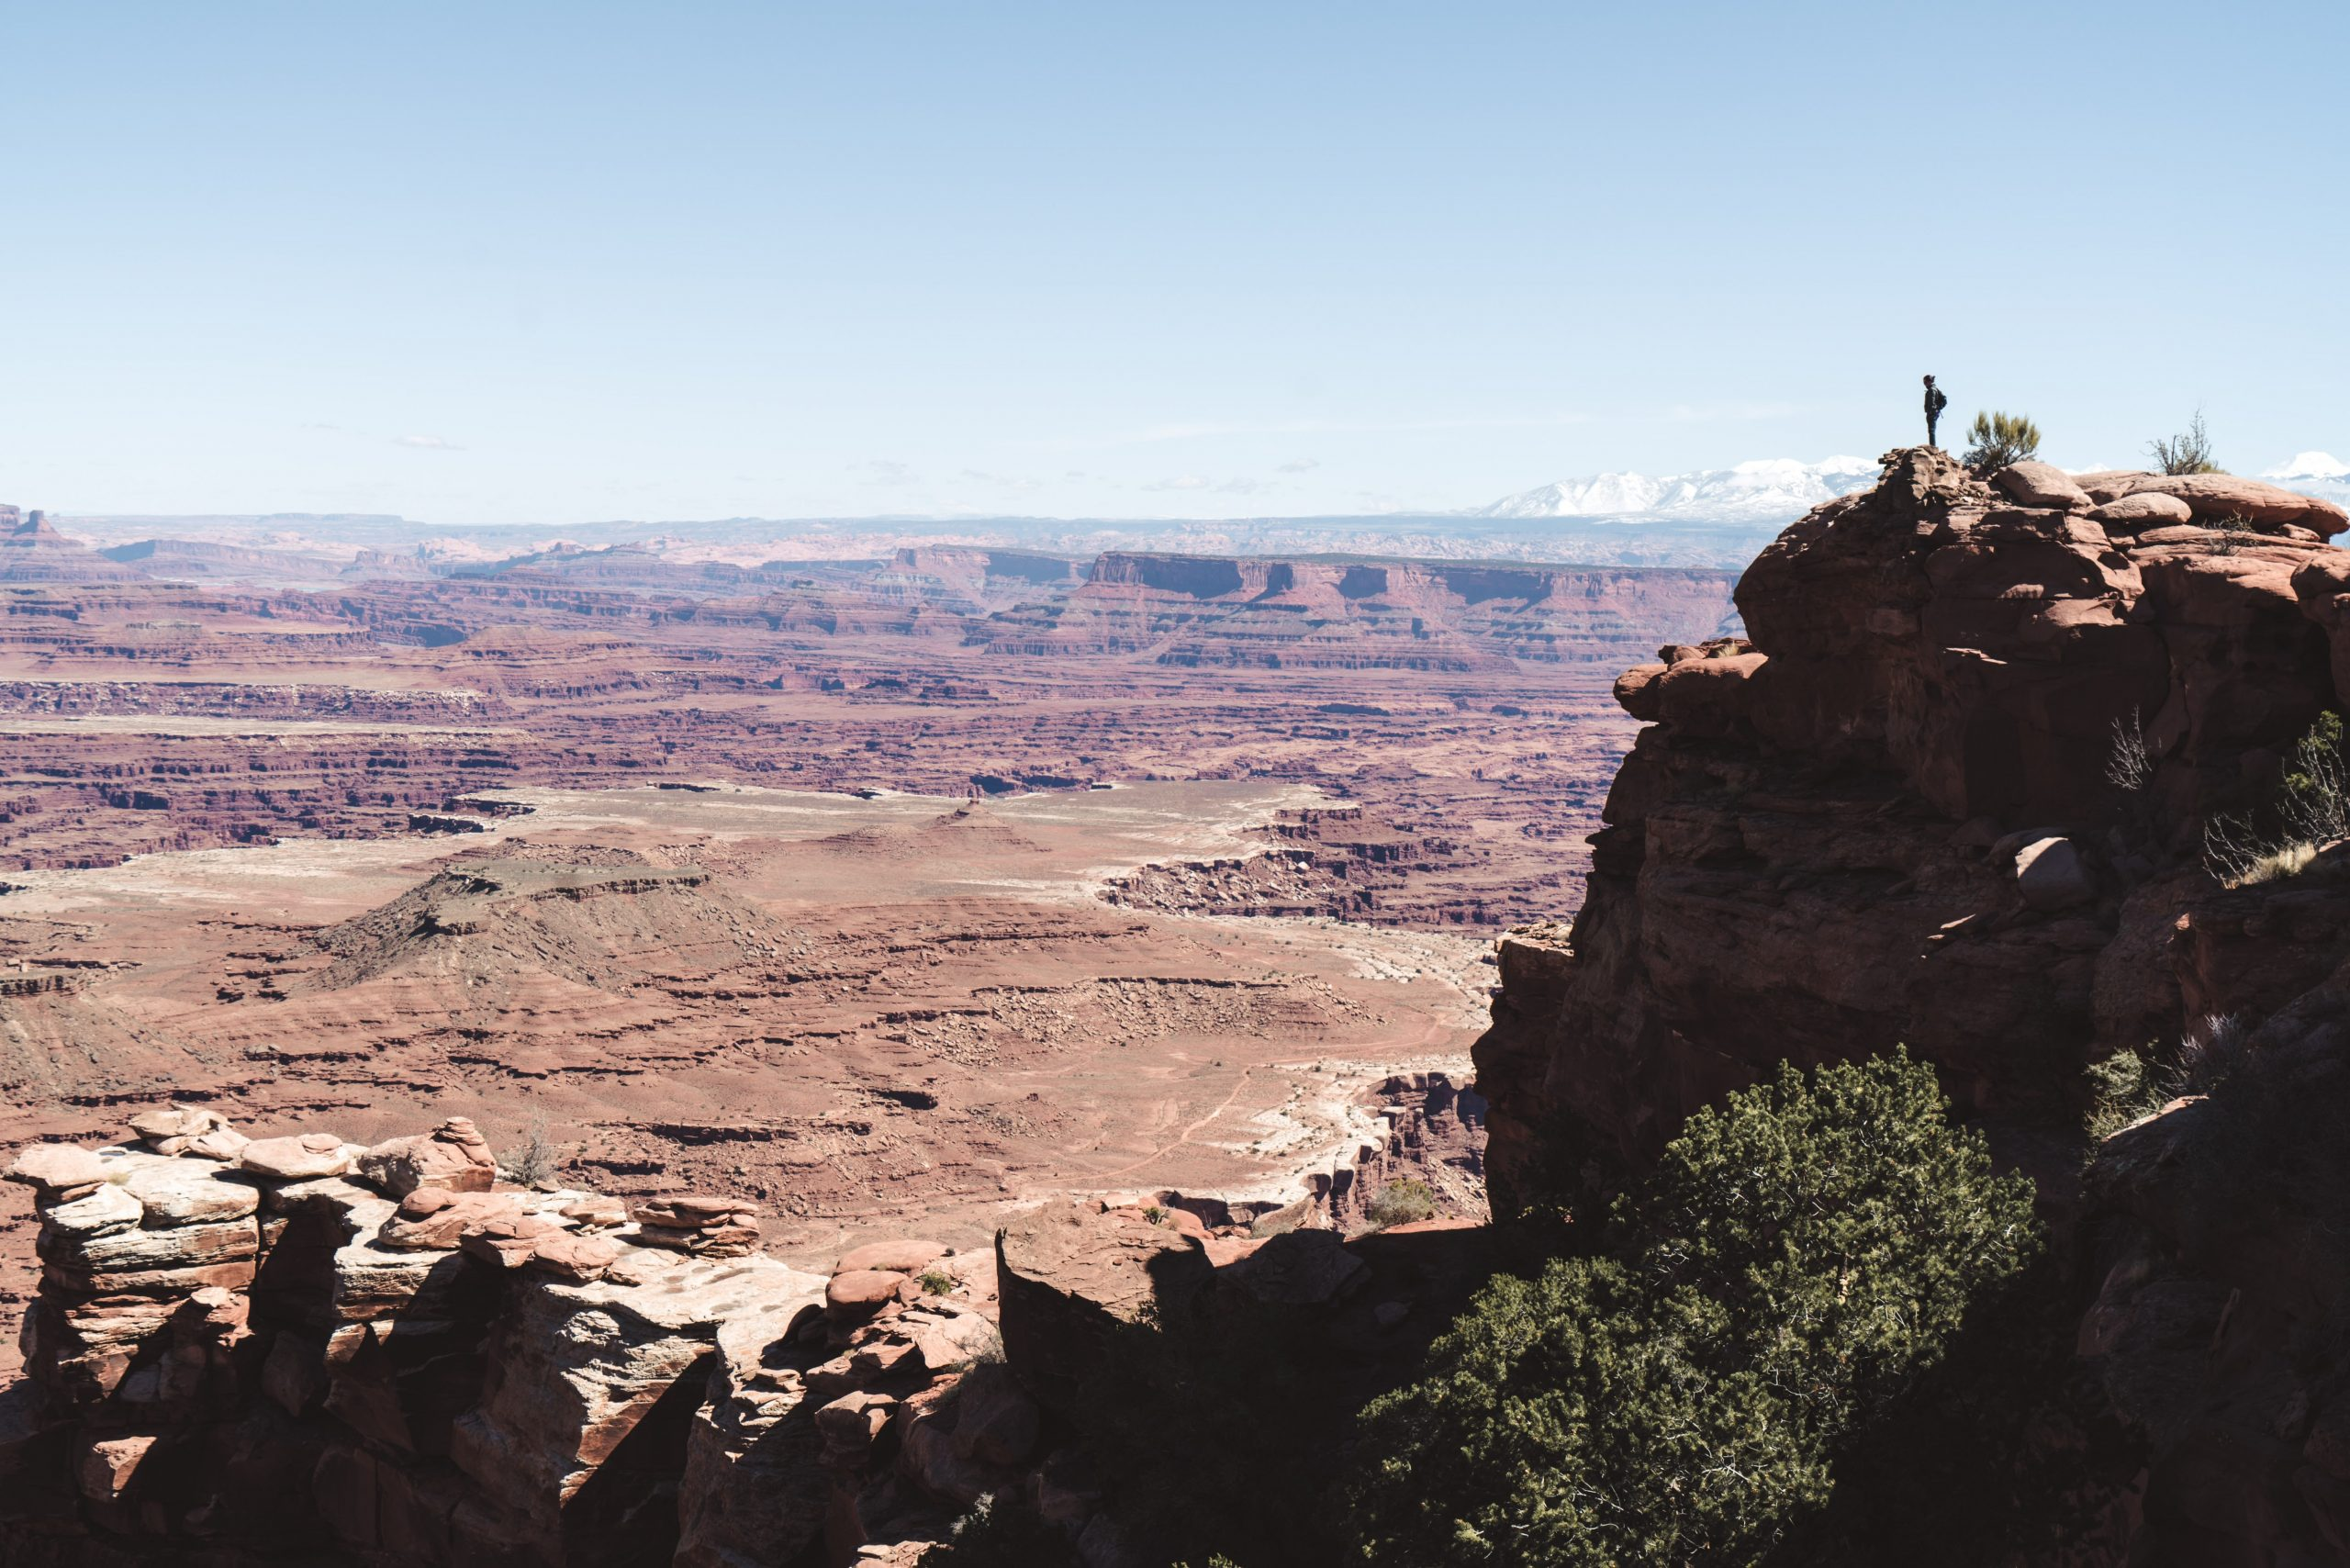 View from Buksky canyon